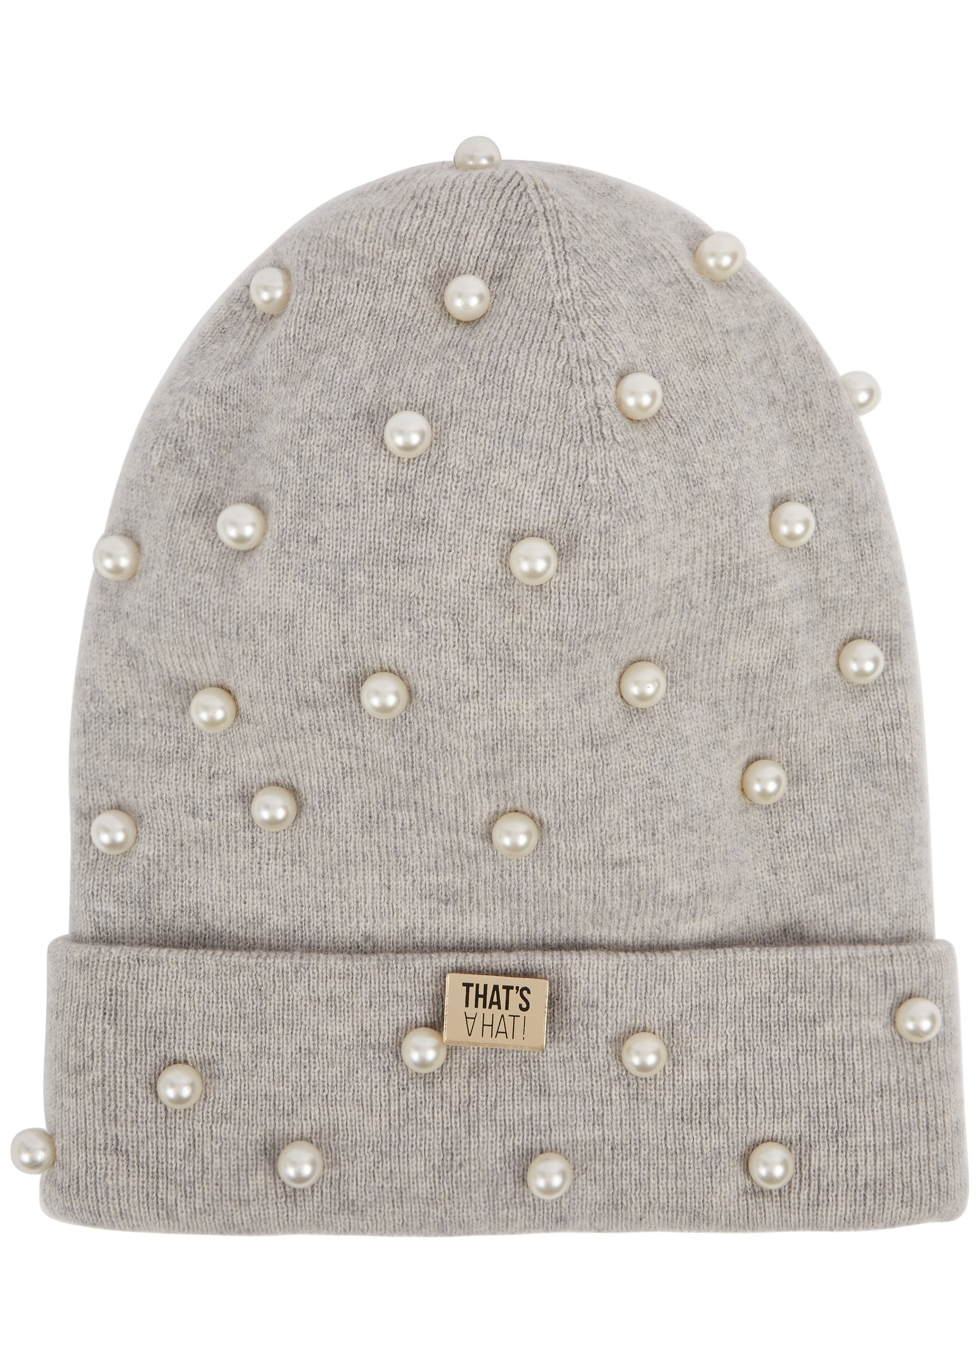 THATSAHAT ! Grey Embellished Wool-Blend Beanie